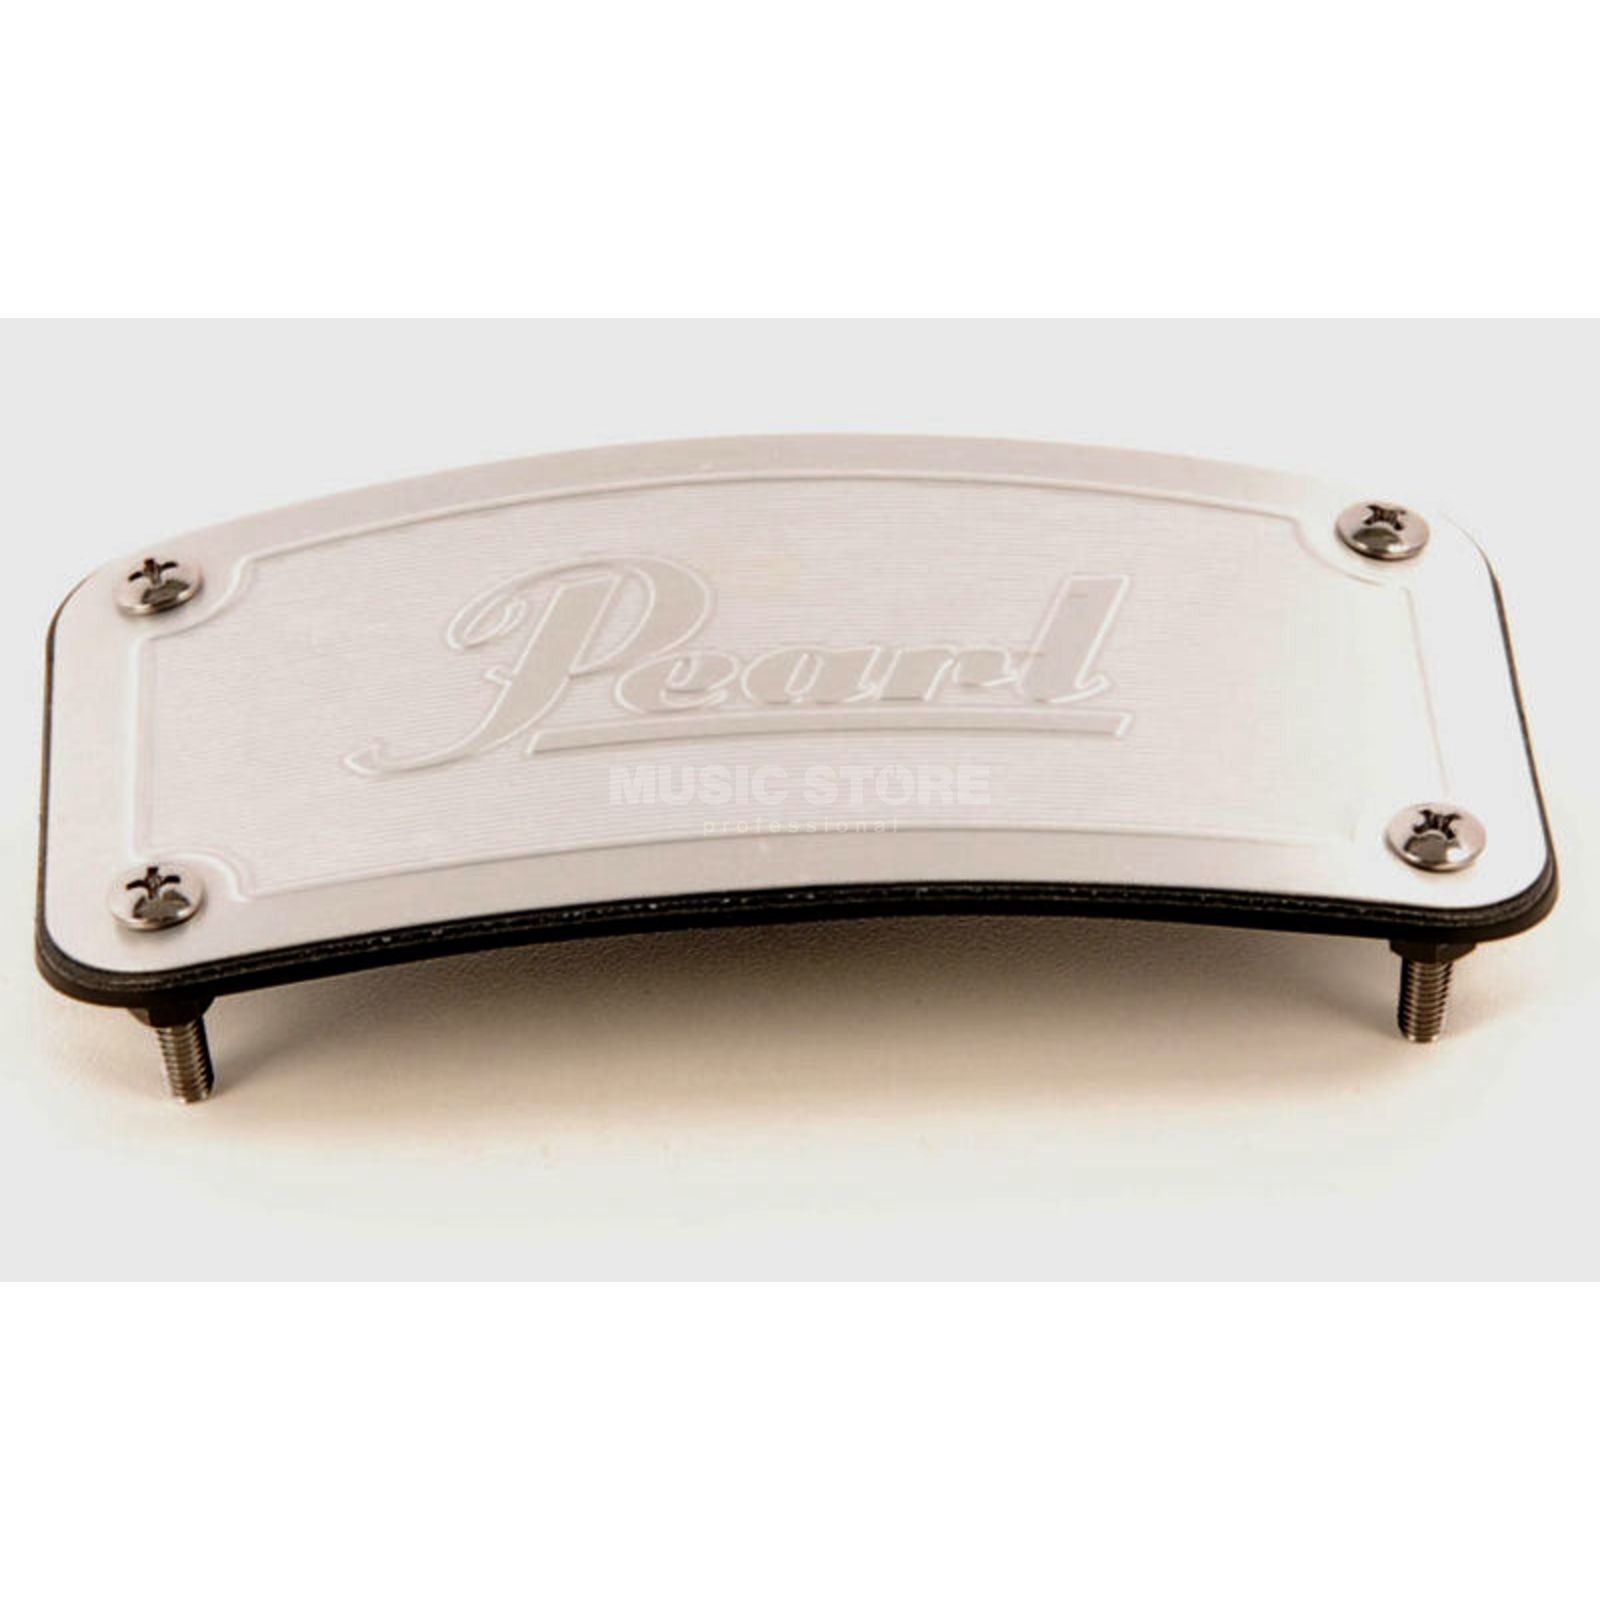 Pearl BBC-1 Masking Plate Cover for Bass Drum Rosette BB-3 Zdjęcie produktu